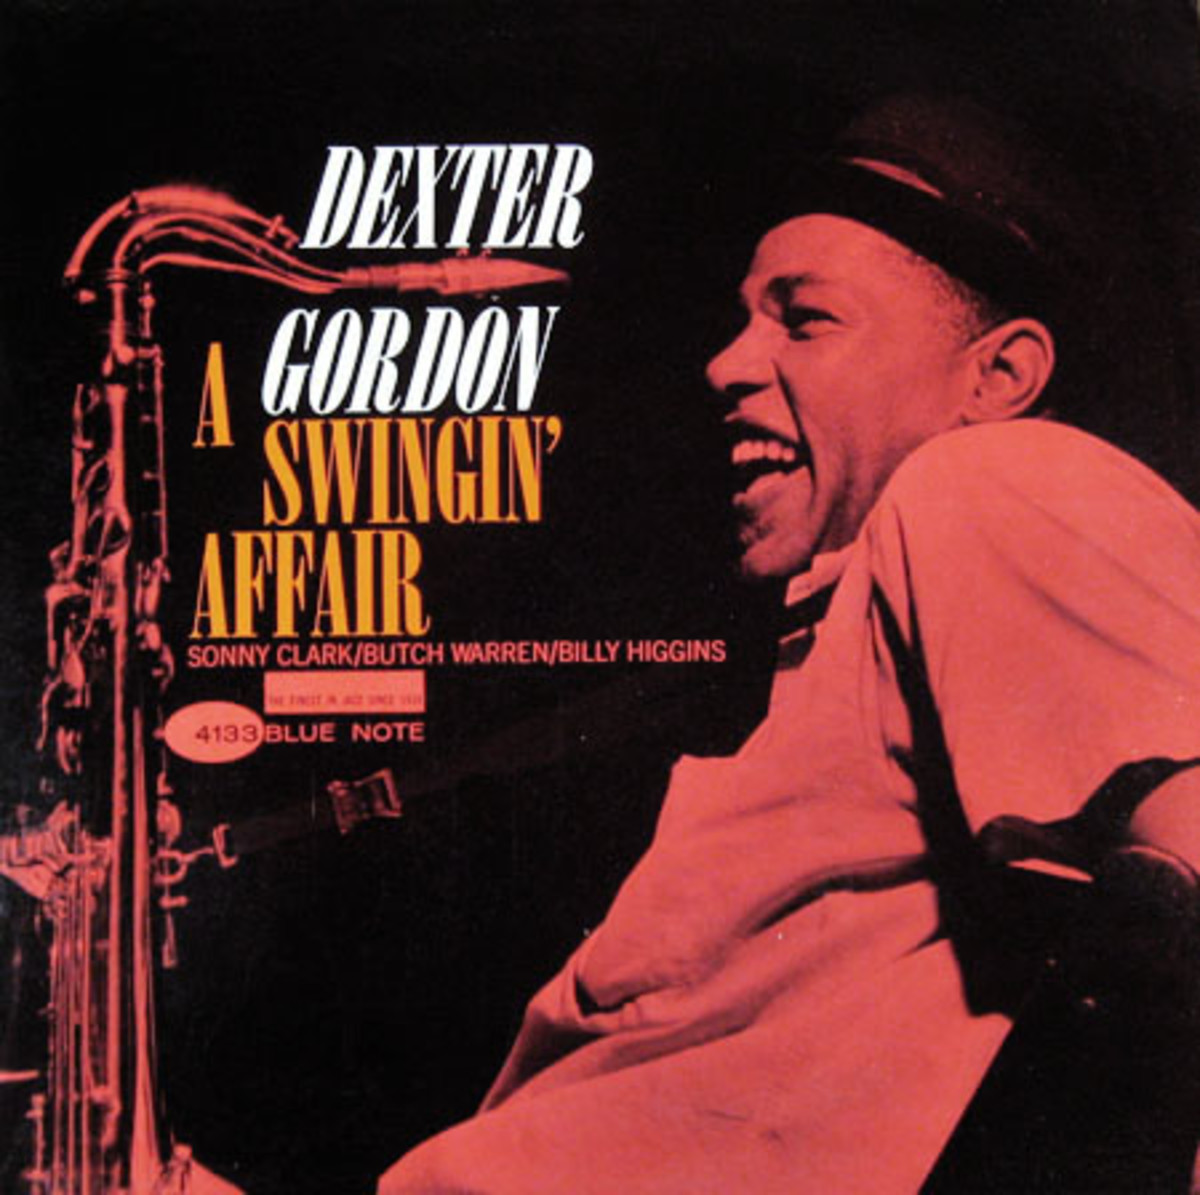 "Dexter Gordon ""A Swingin´ Affair"" Blue Note 4133 12"" LP Vinyl Record (1963) Album Cover Design by Reid Miles, Photo by Francis Wolff"